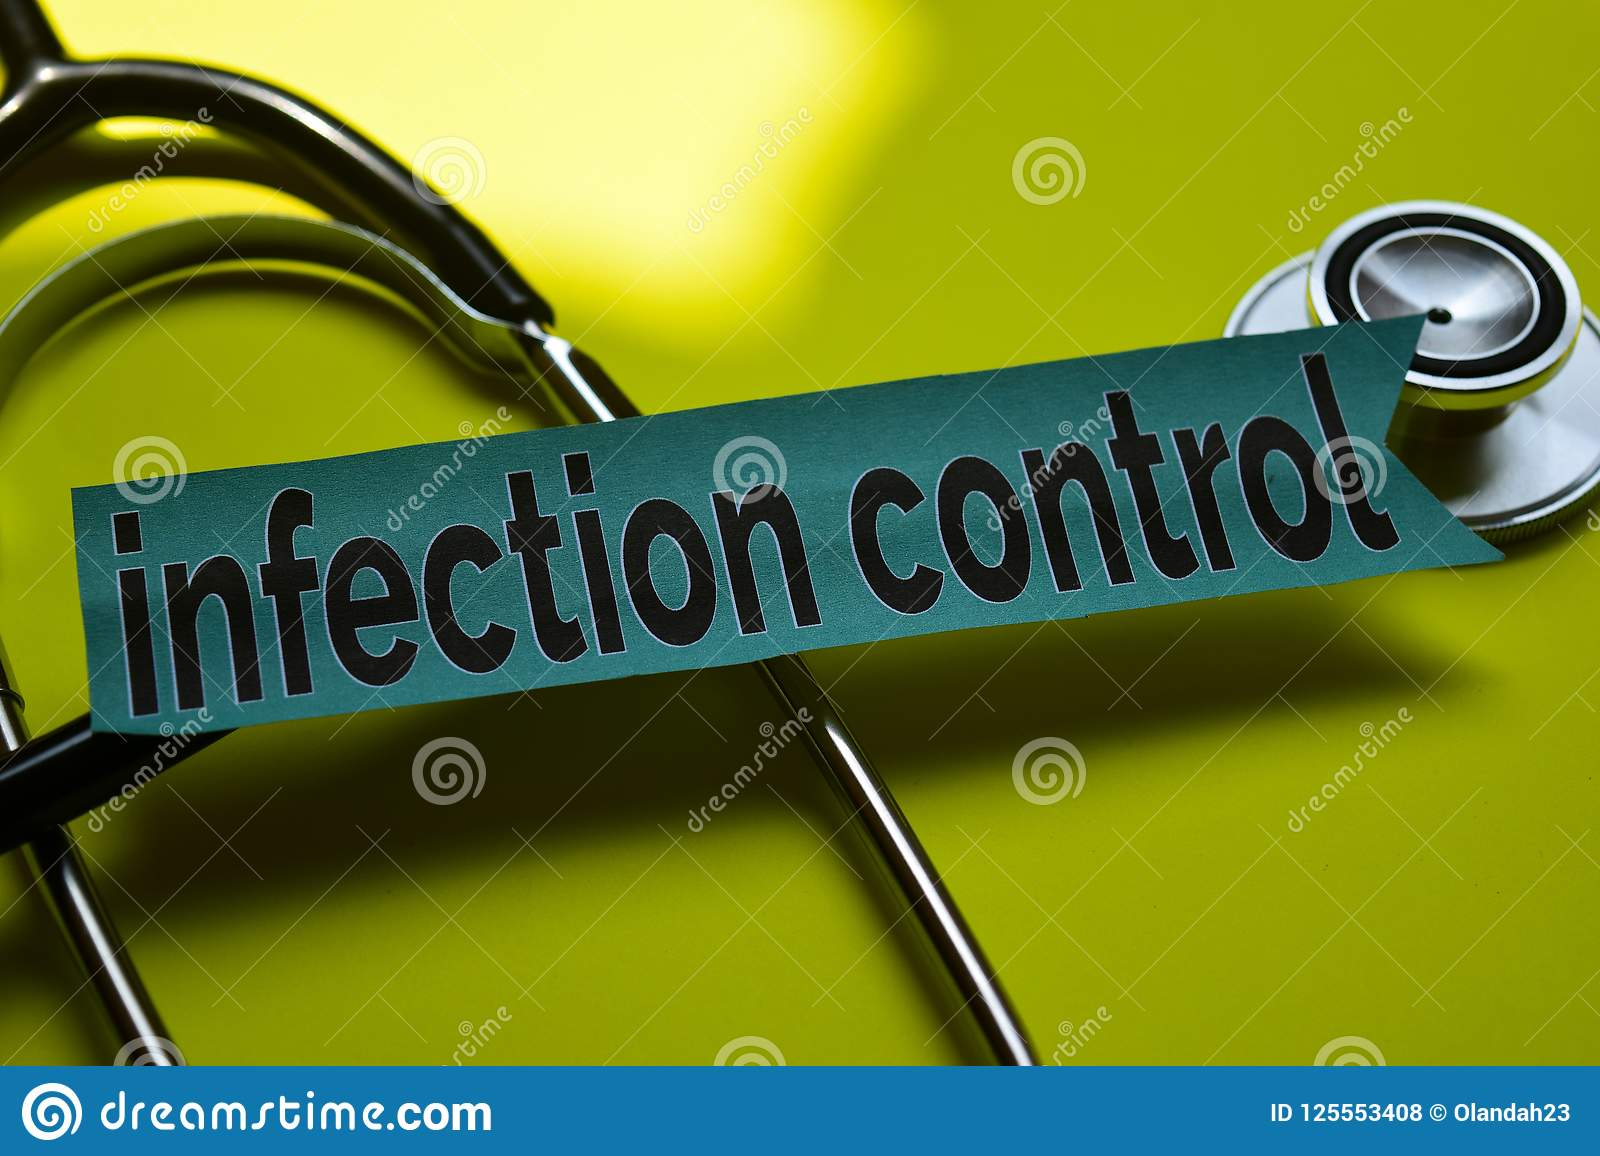 Closeup infection control with stethoscope concept inspiration on yellow background